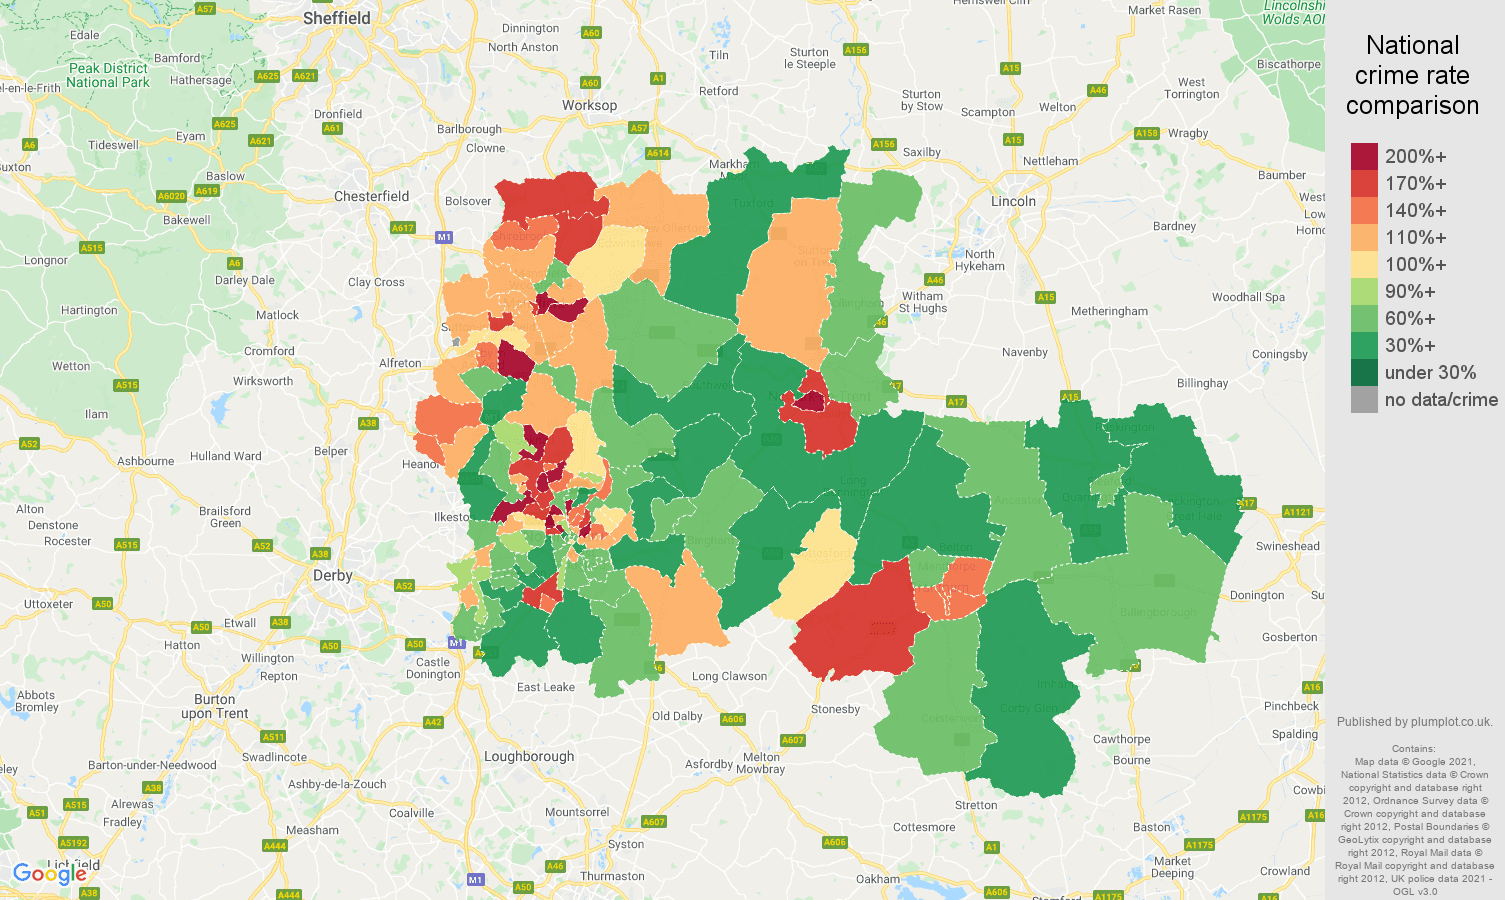 Nottingham criminal damage and arson crime rate comparison map